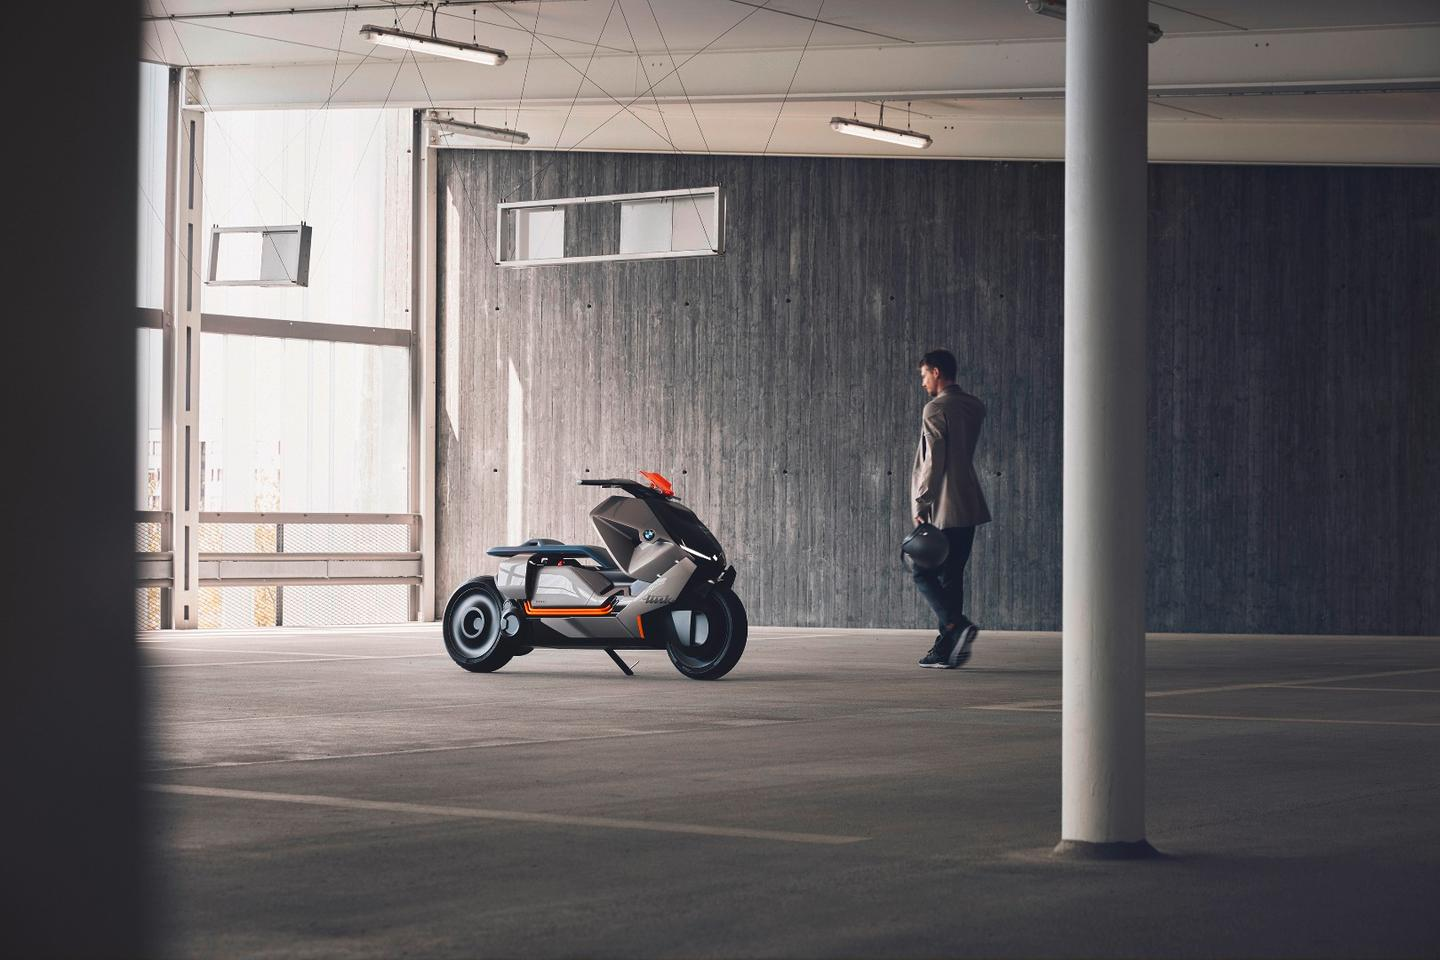 BMW Motorrad unveiled the Concept Link as a study on the future of urban mobility